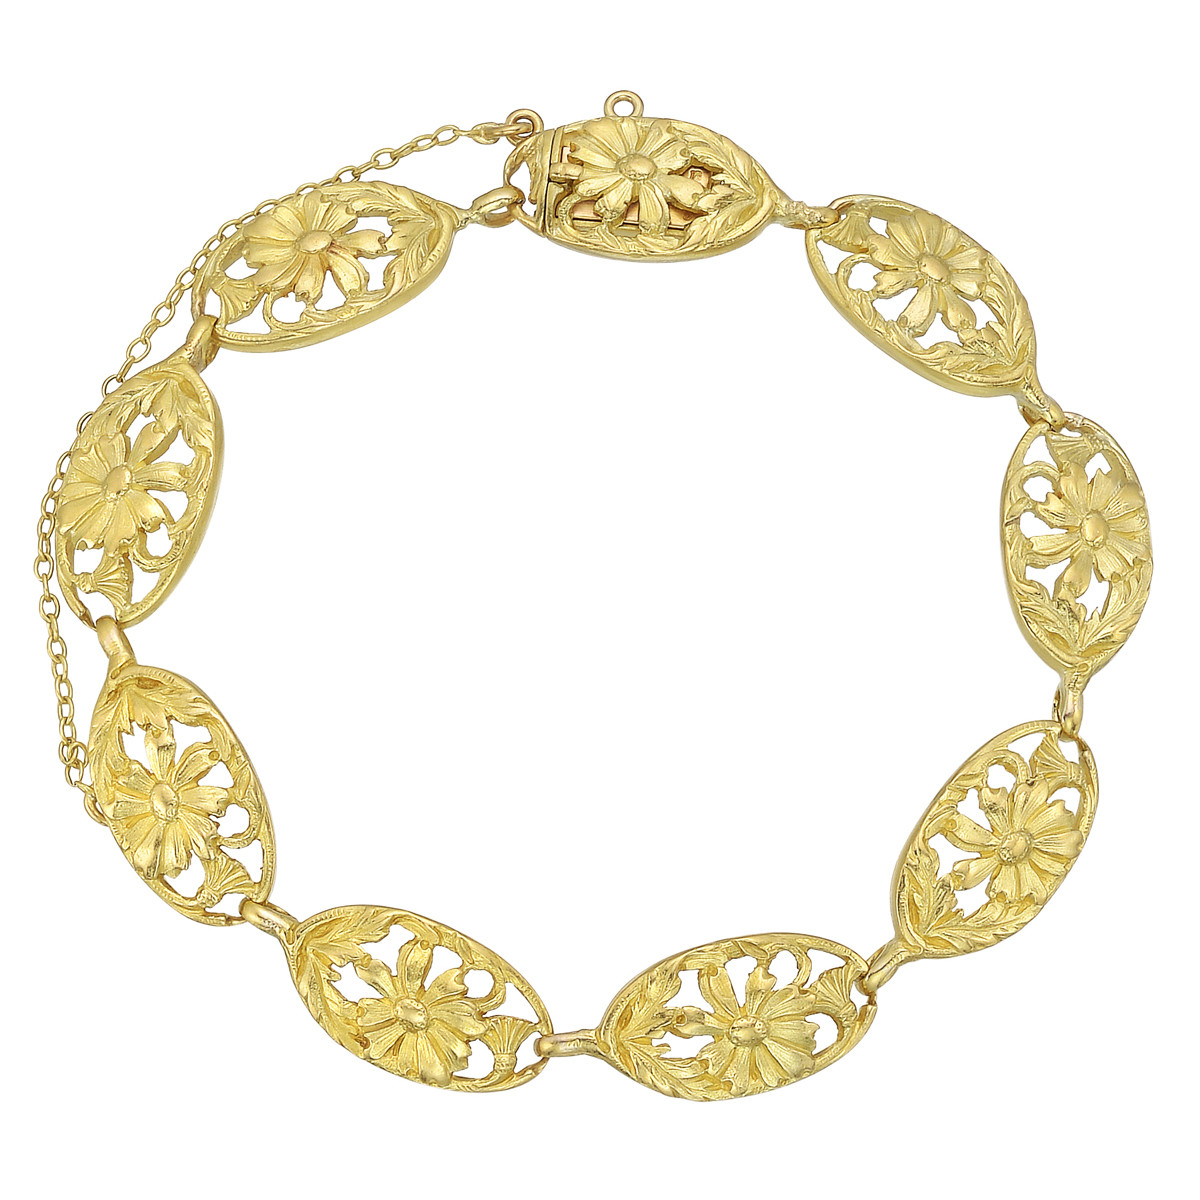 French 18k Yellow Gold Link Bracelet